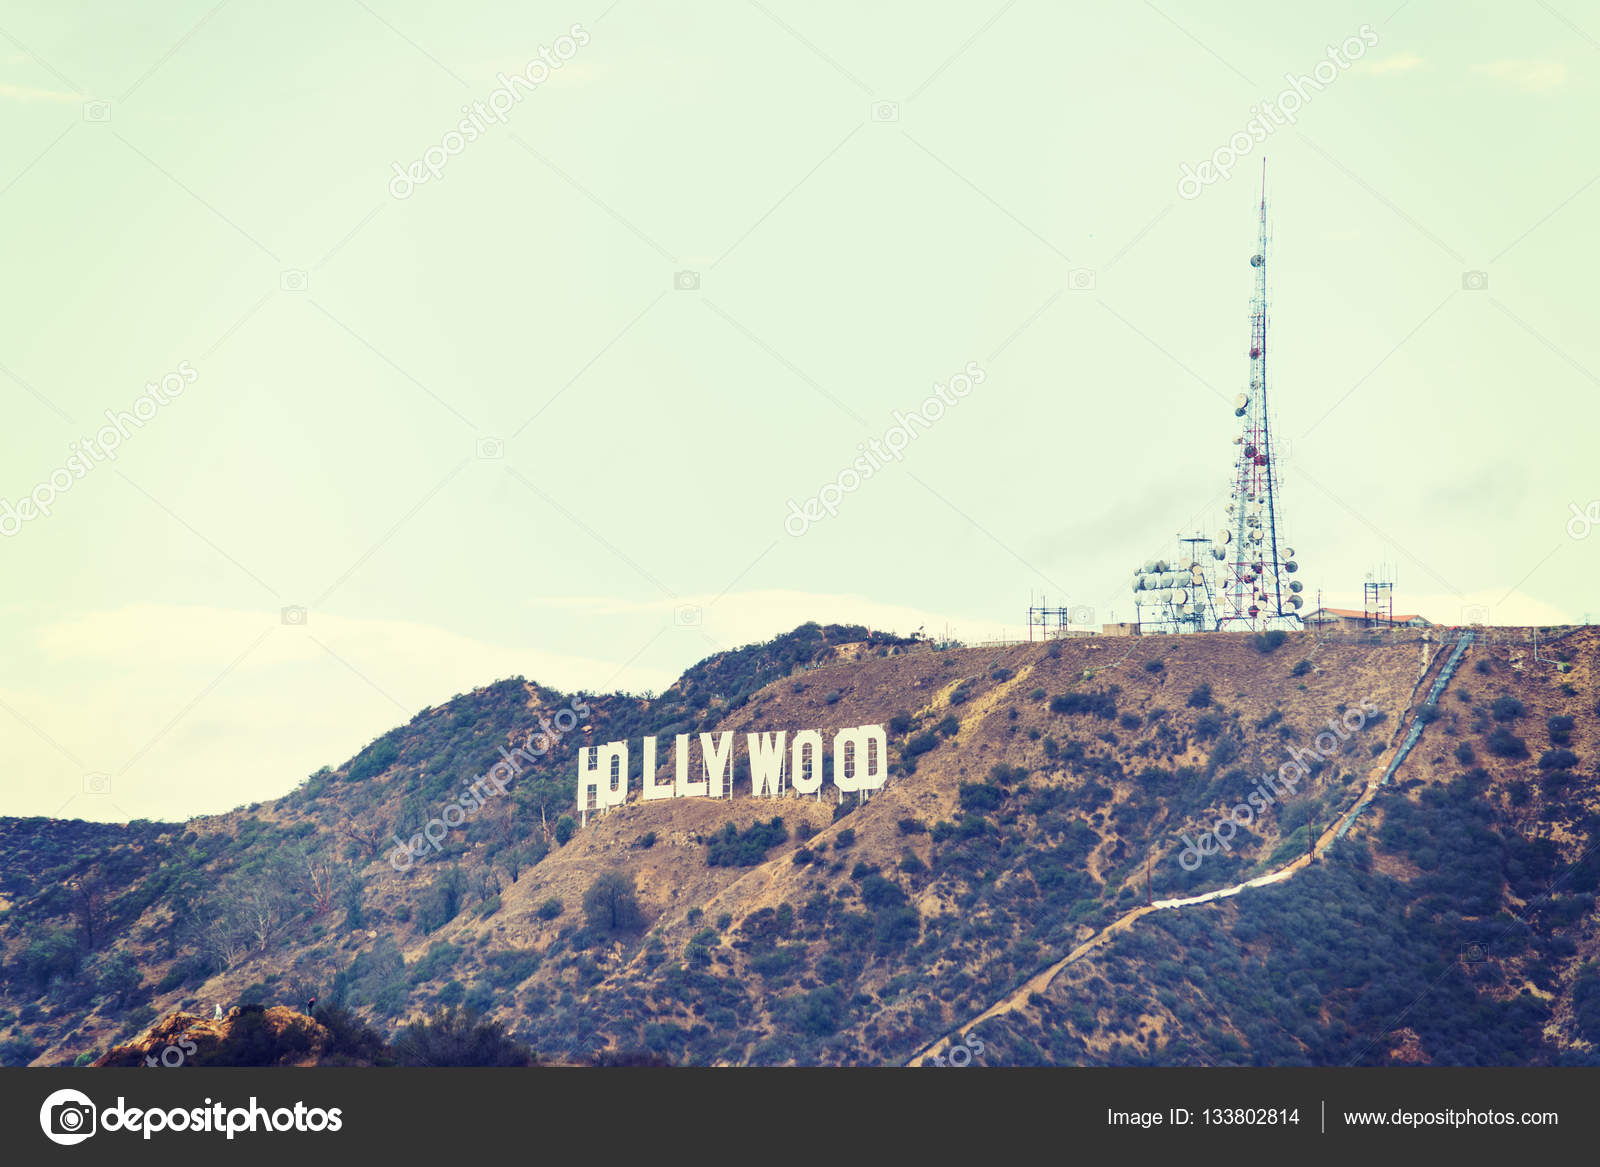 Hollywood Sign In Vintage Tone Stock Photo